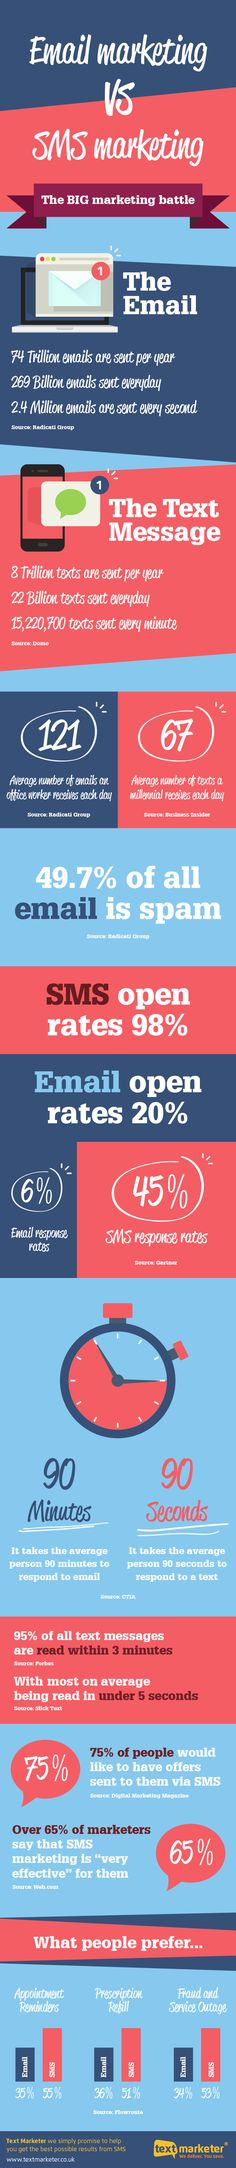 Email vs. SMS: Which Is the More Effective Marketing Channel? | Infographic